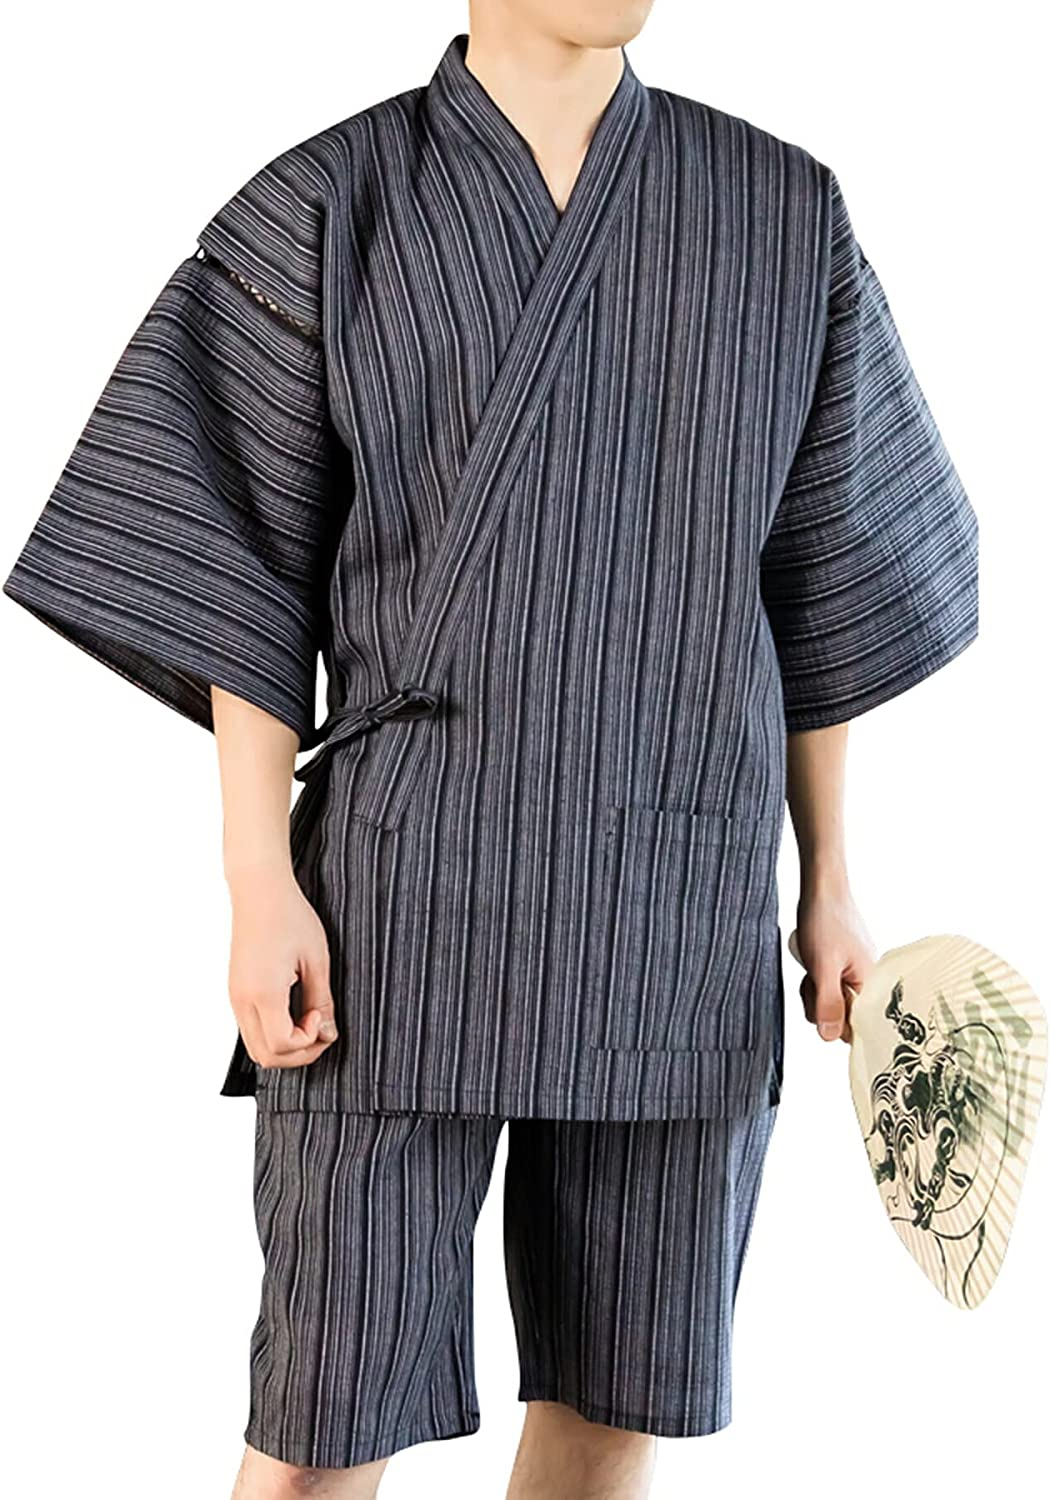 Japanese Max 75% Mail order cheap OFF traditional mens summer Jinbei wear